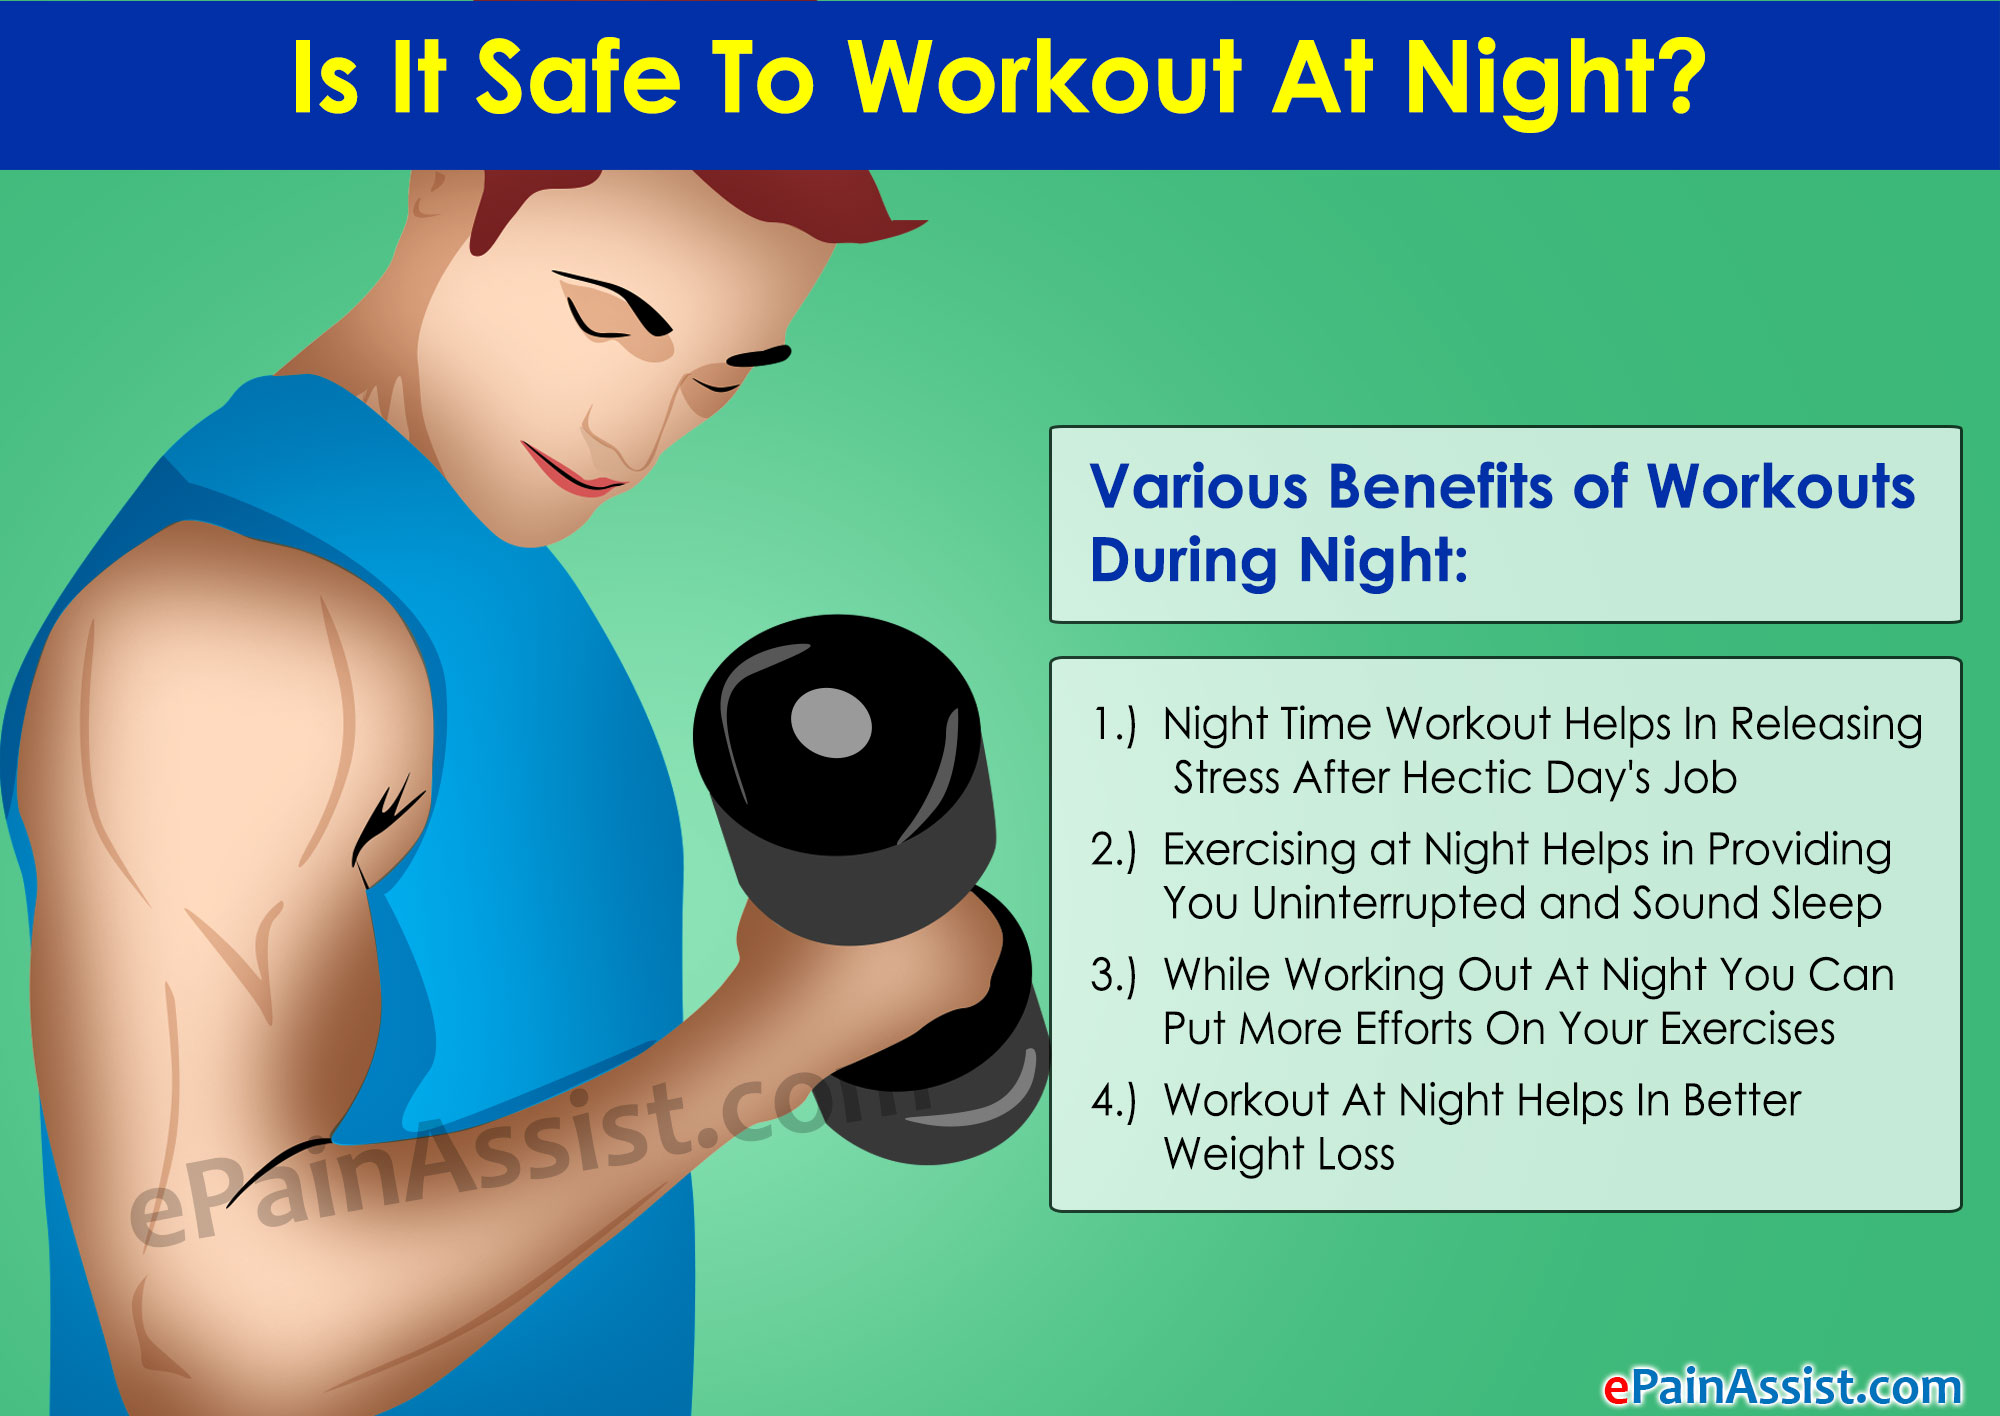 Workout At Night